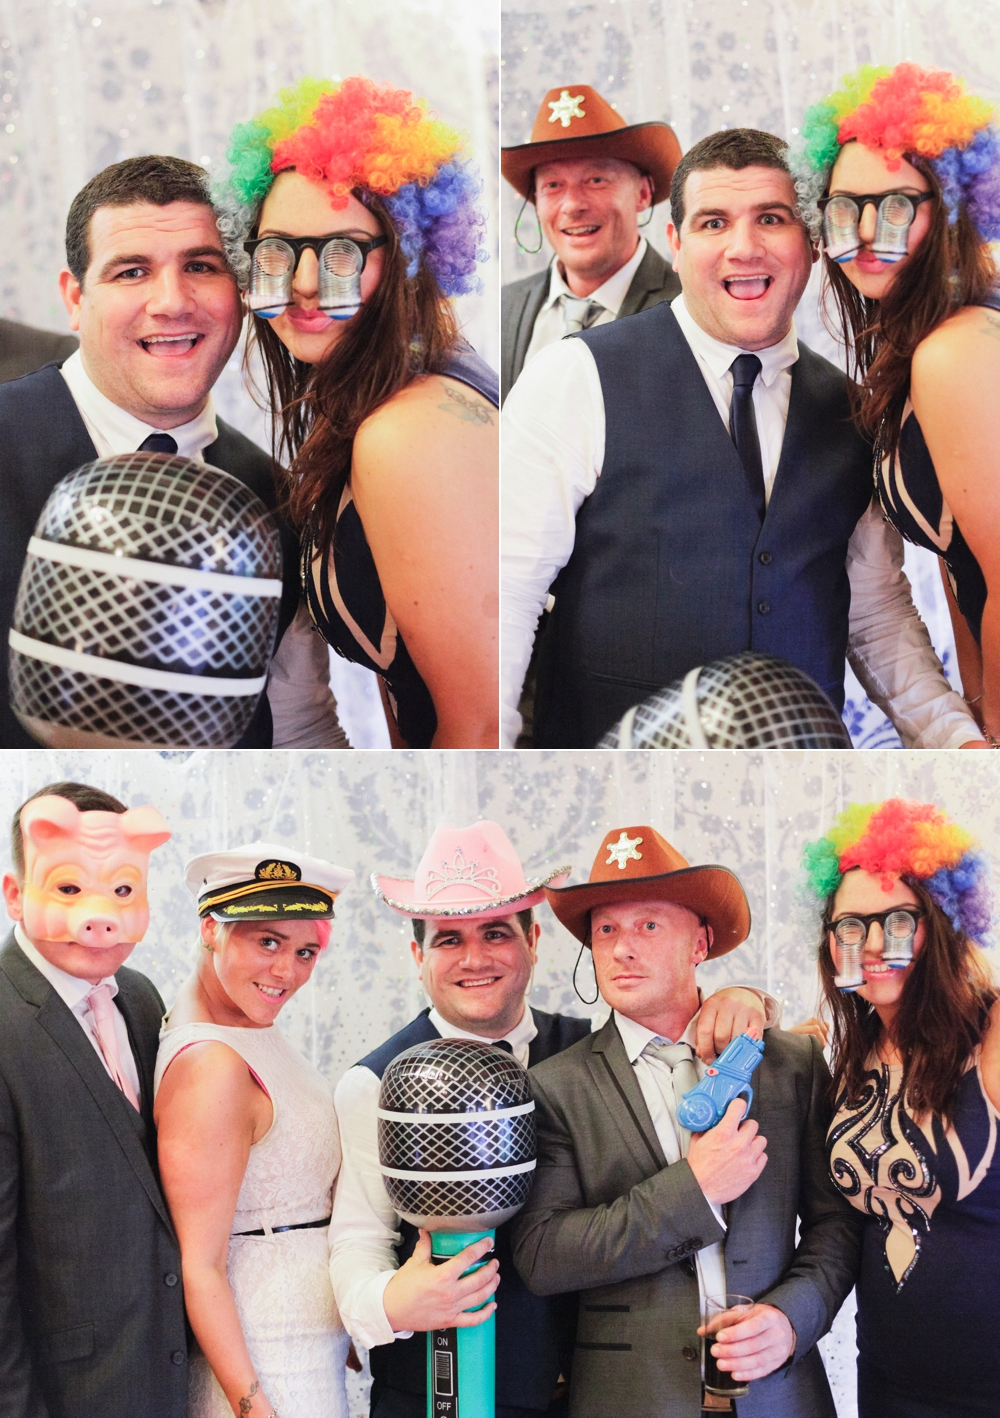 Wedding-Photo-Booth-Essex_0006.jpg